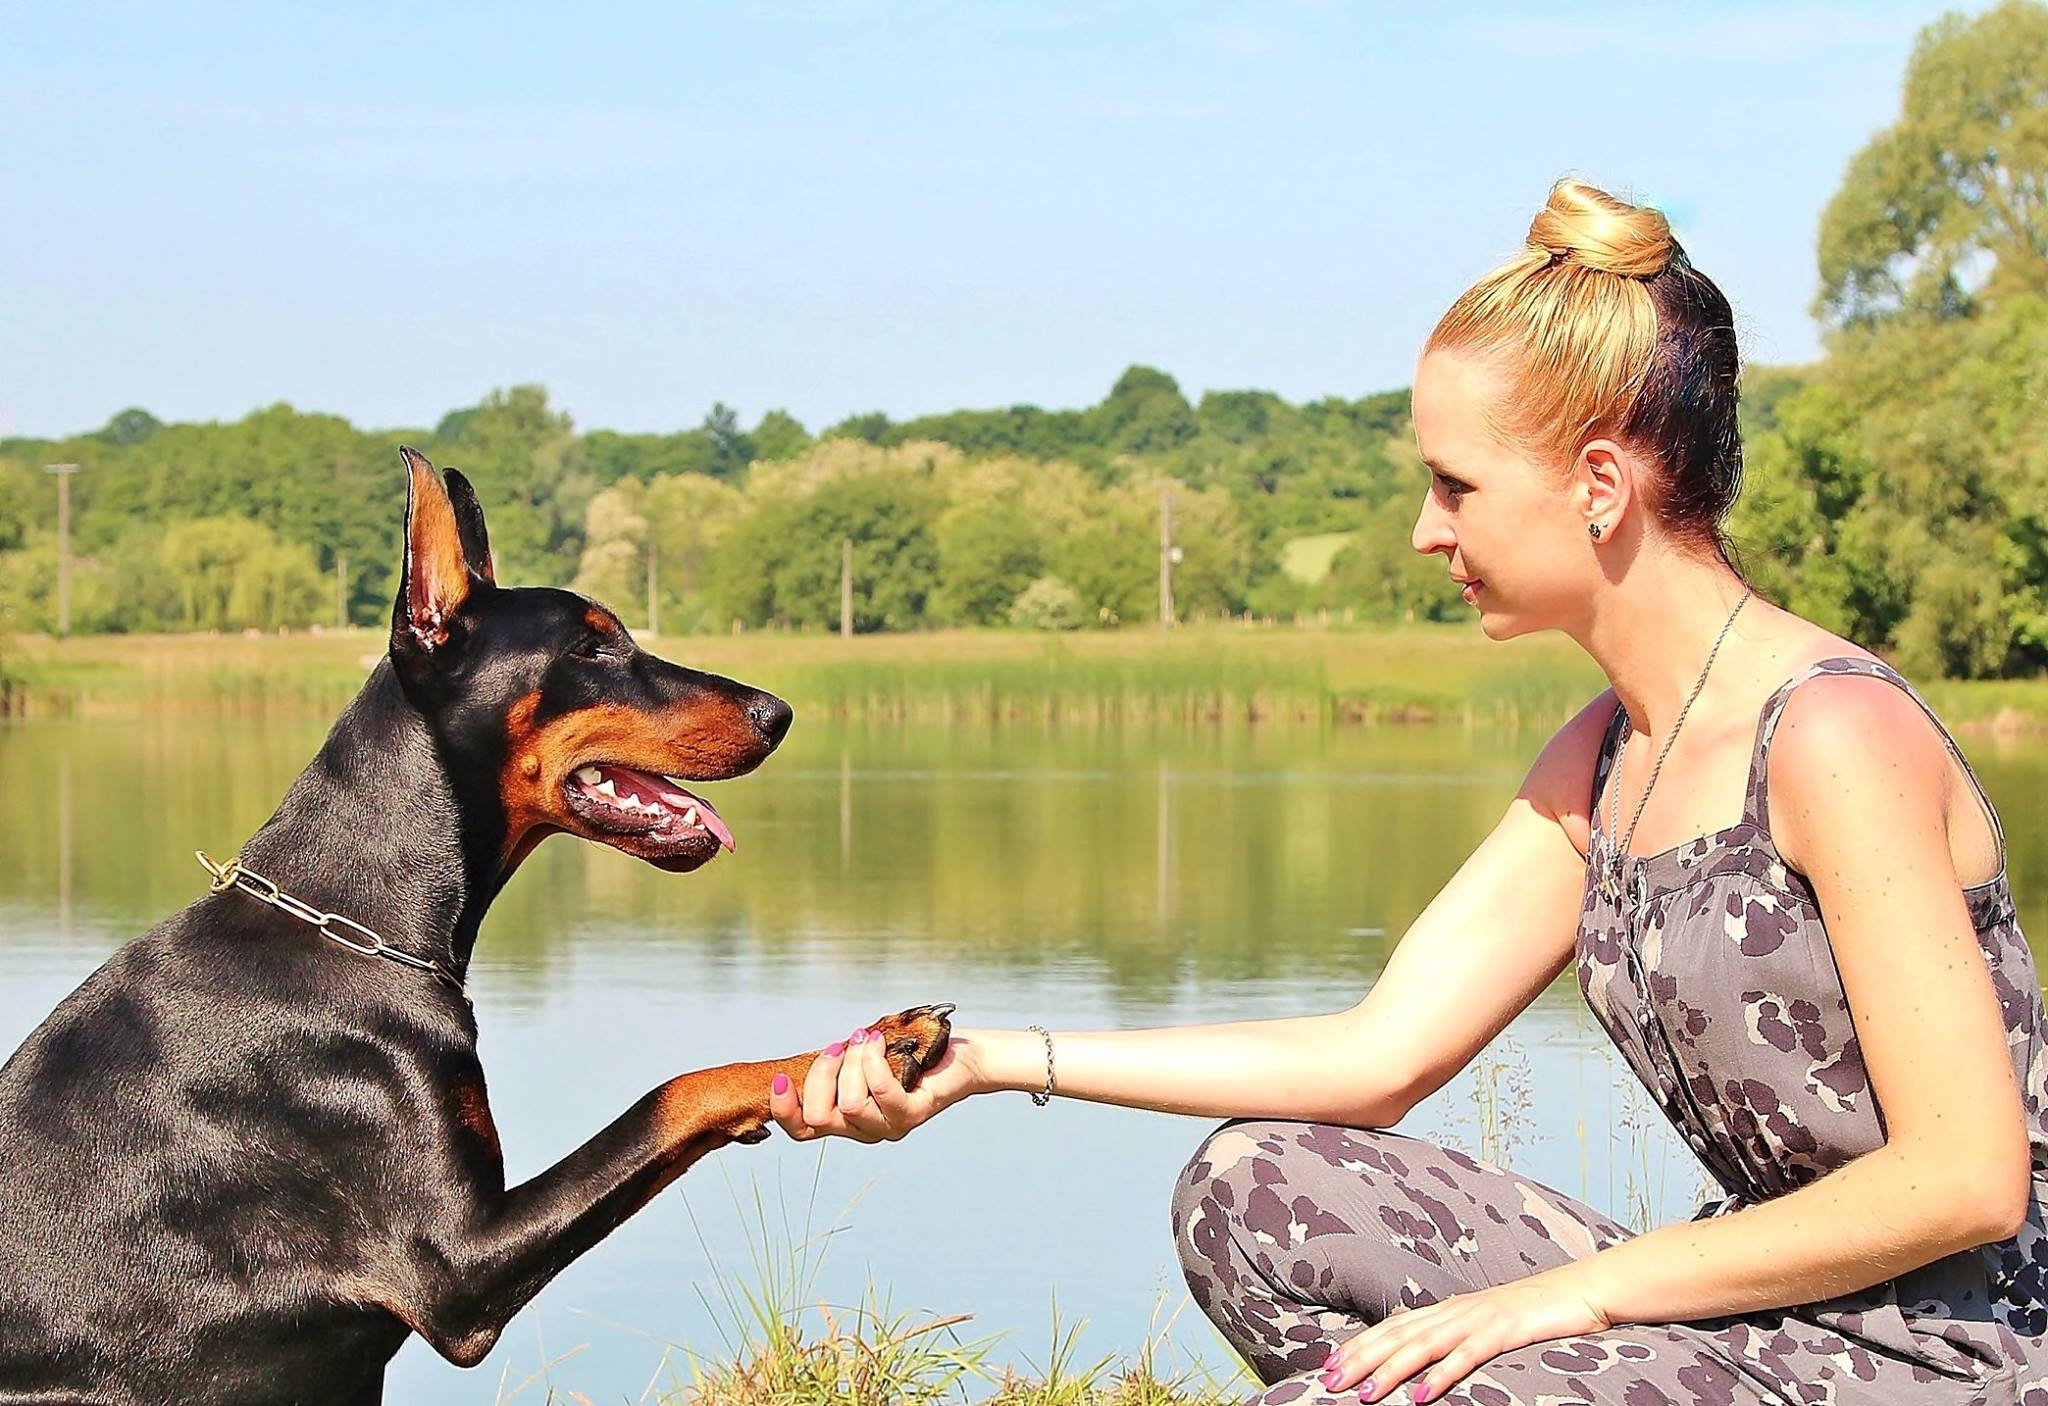 doberman shaking with owner